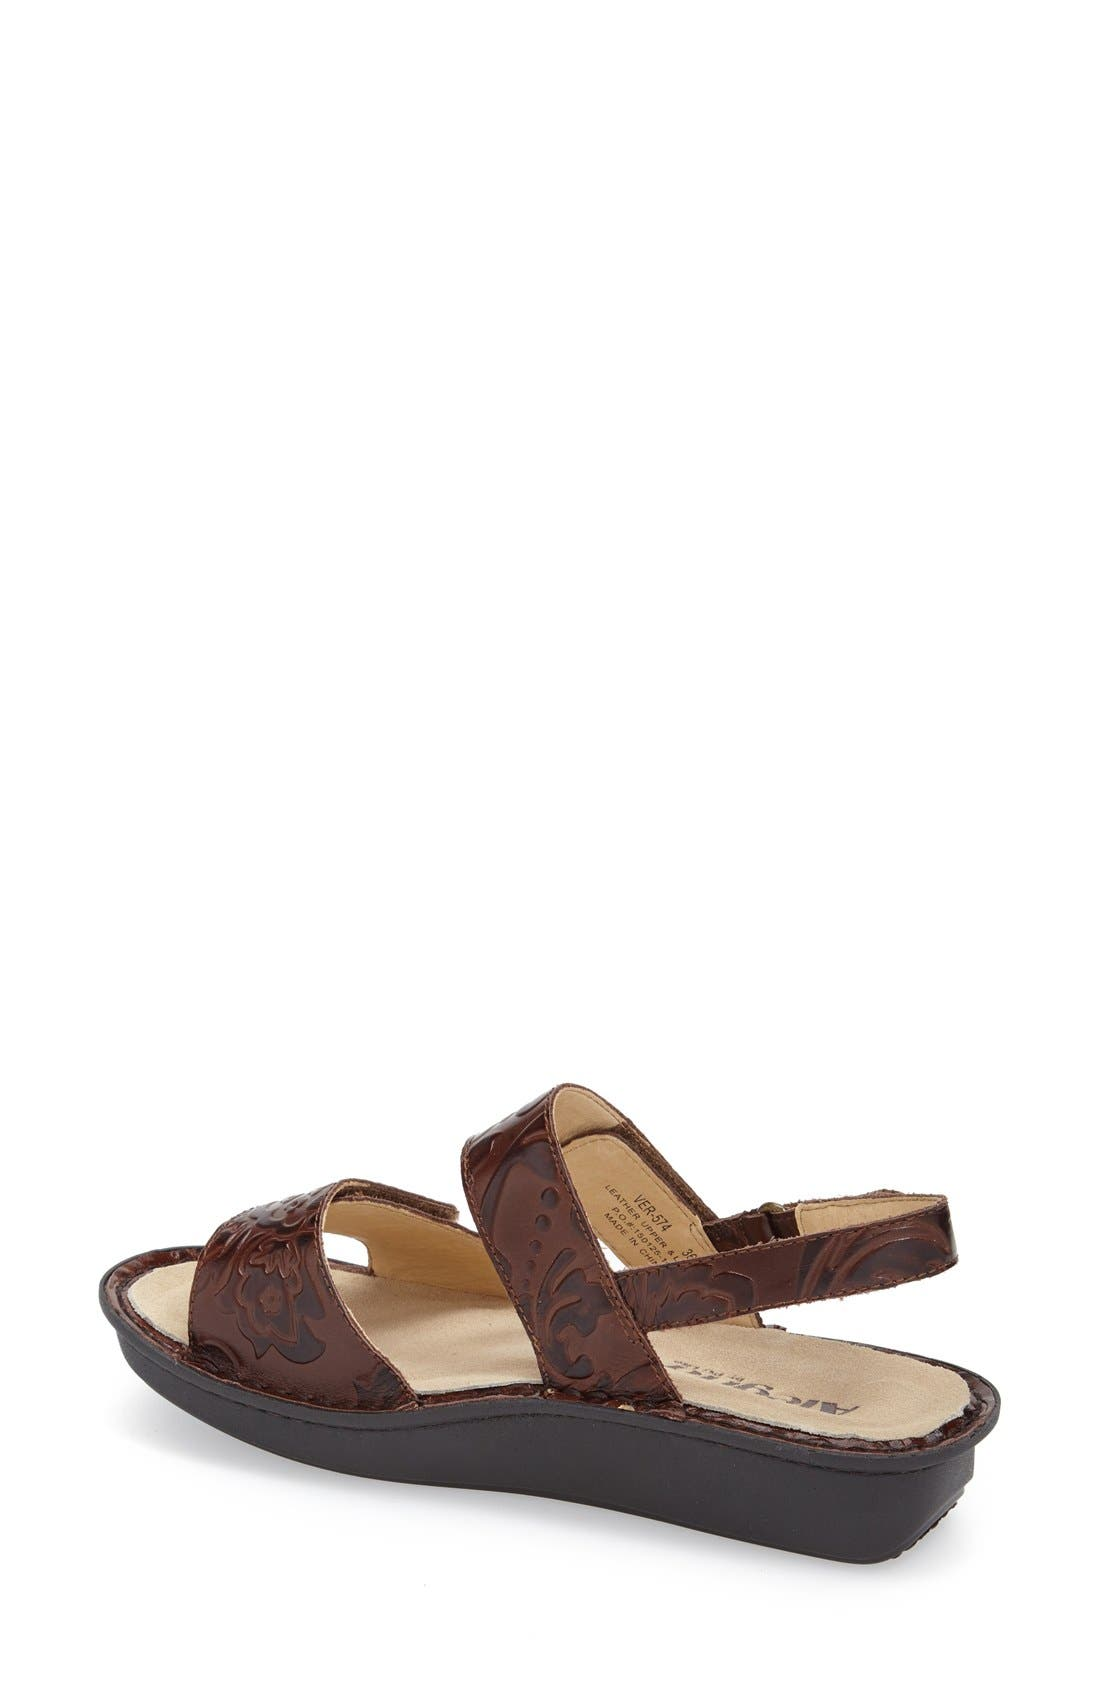 Alternate Image 2  - Alegria 'Verona' Sandal (Women)